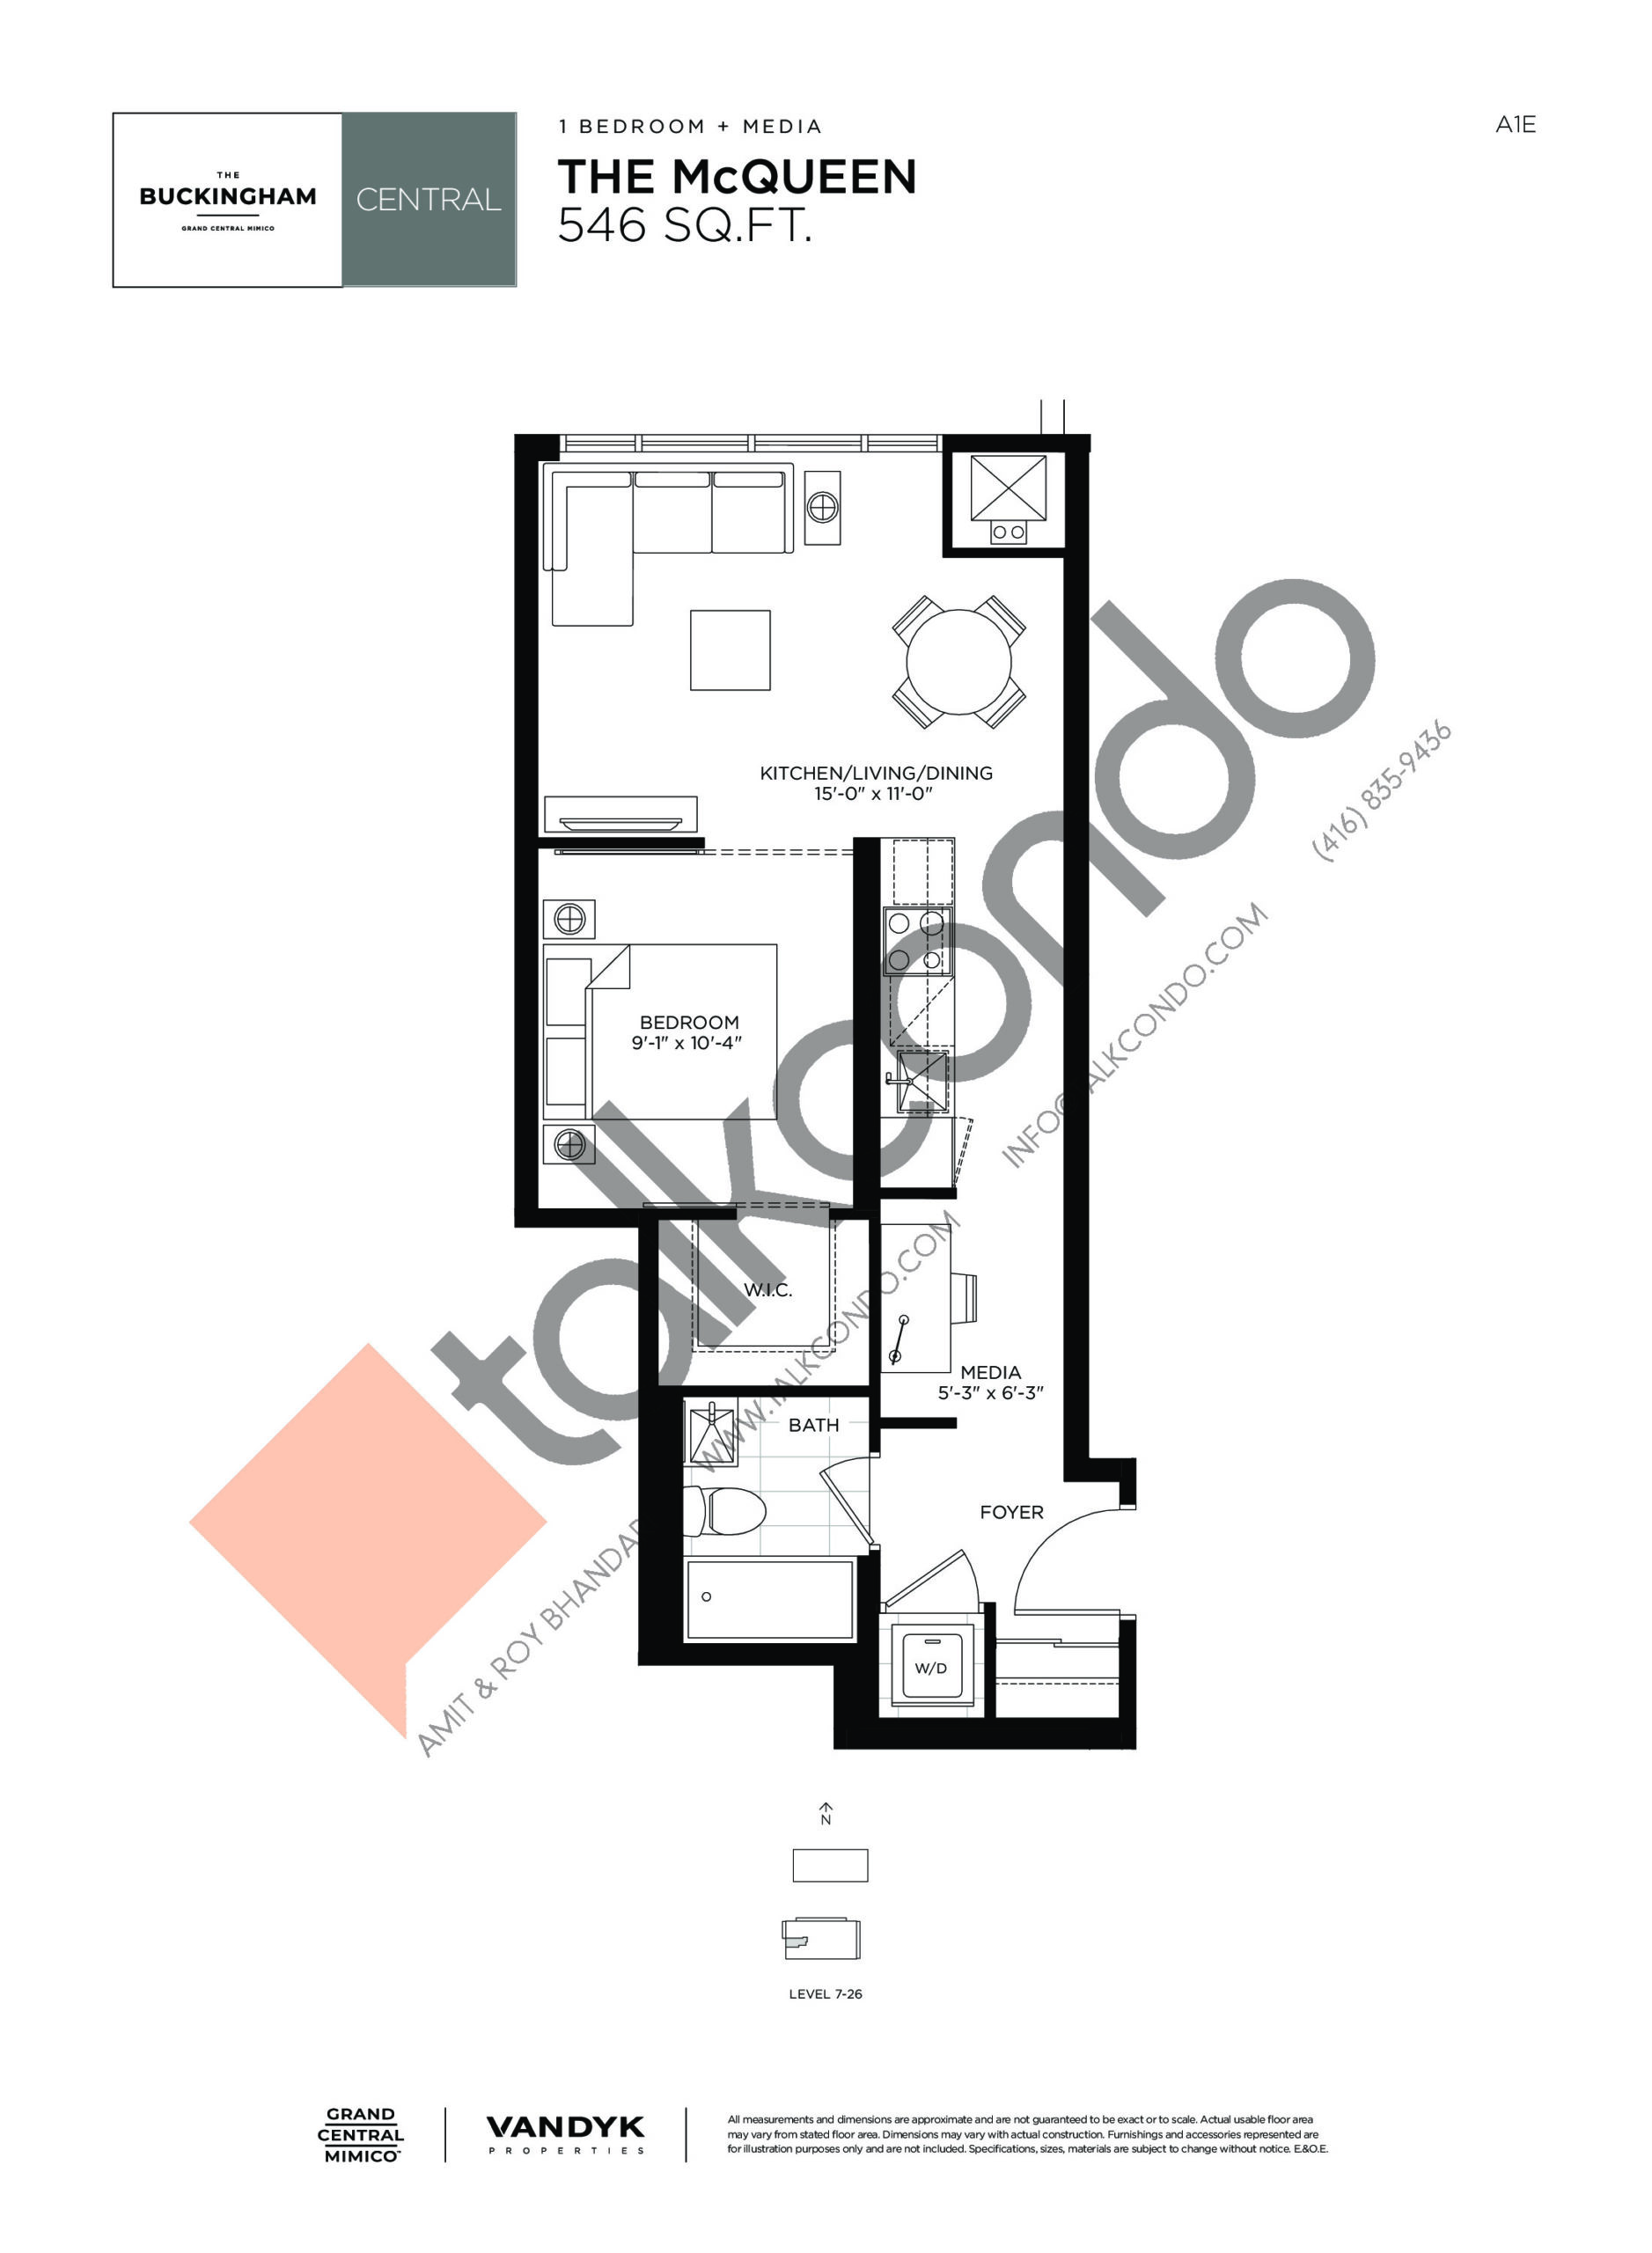 The McQueen Floor Plan at Grand Central Mimico Condos - 546 sq.ft